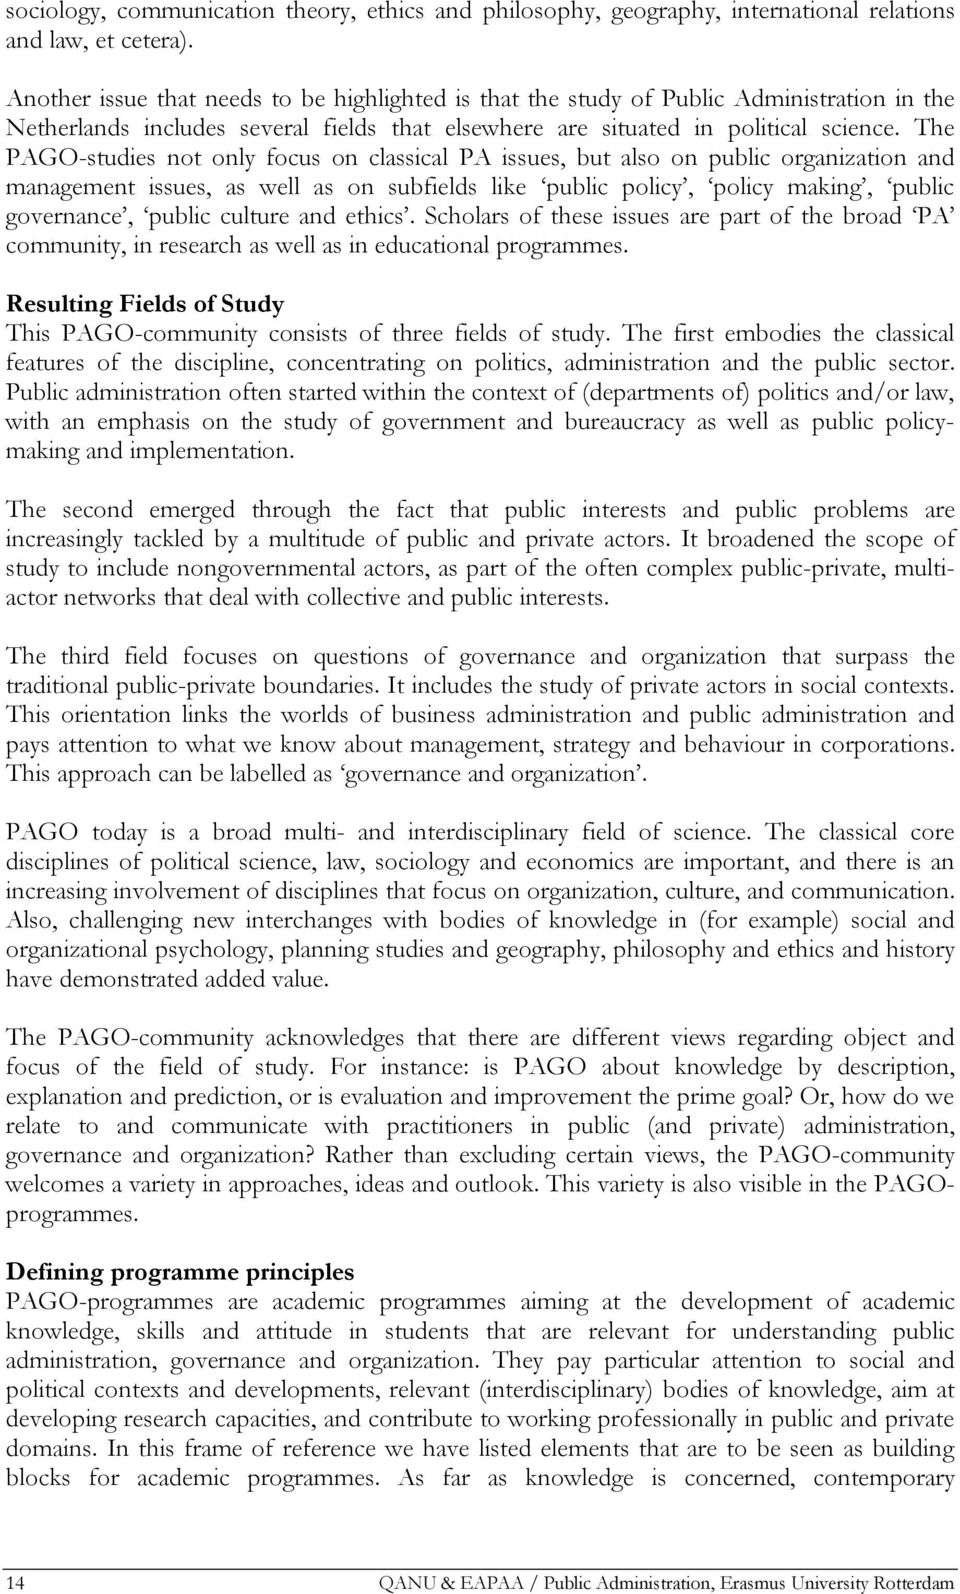 The PAGO-studies not only focus on classical PA issues, but also on public organization and management issues, as well as on subfields like public policy, policy making, public governance, public